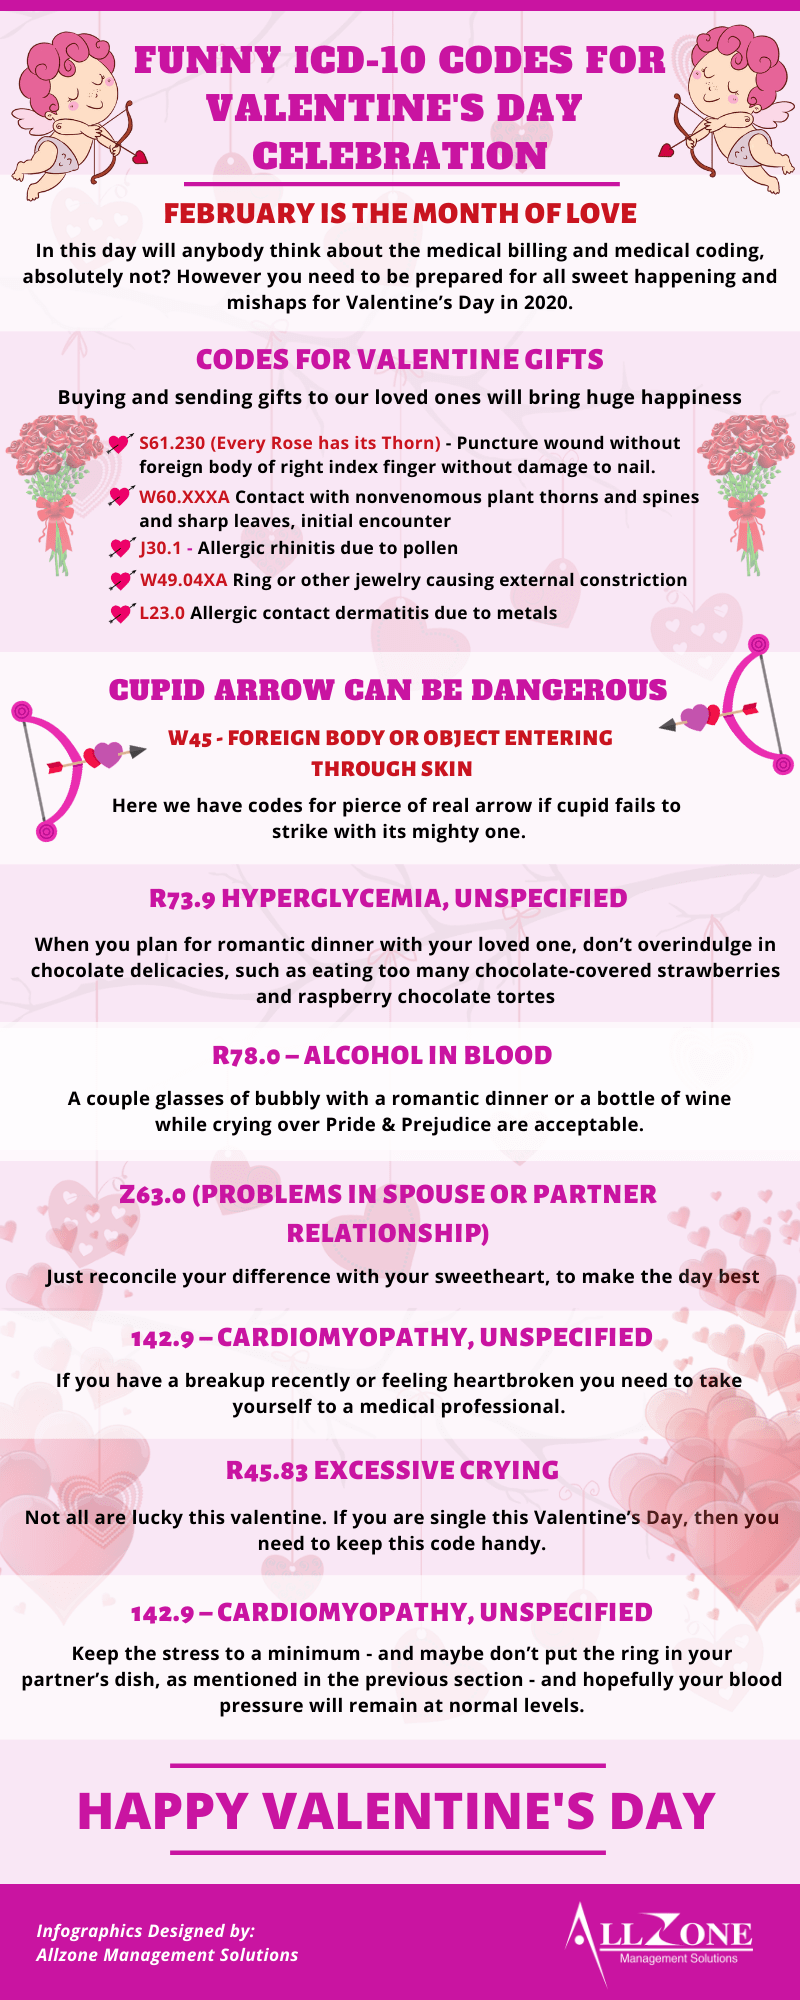 ICD-10 Codes for Valentines Day